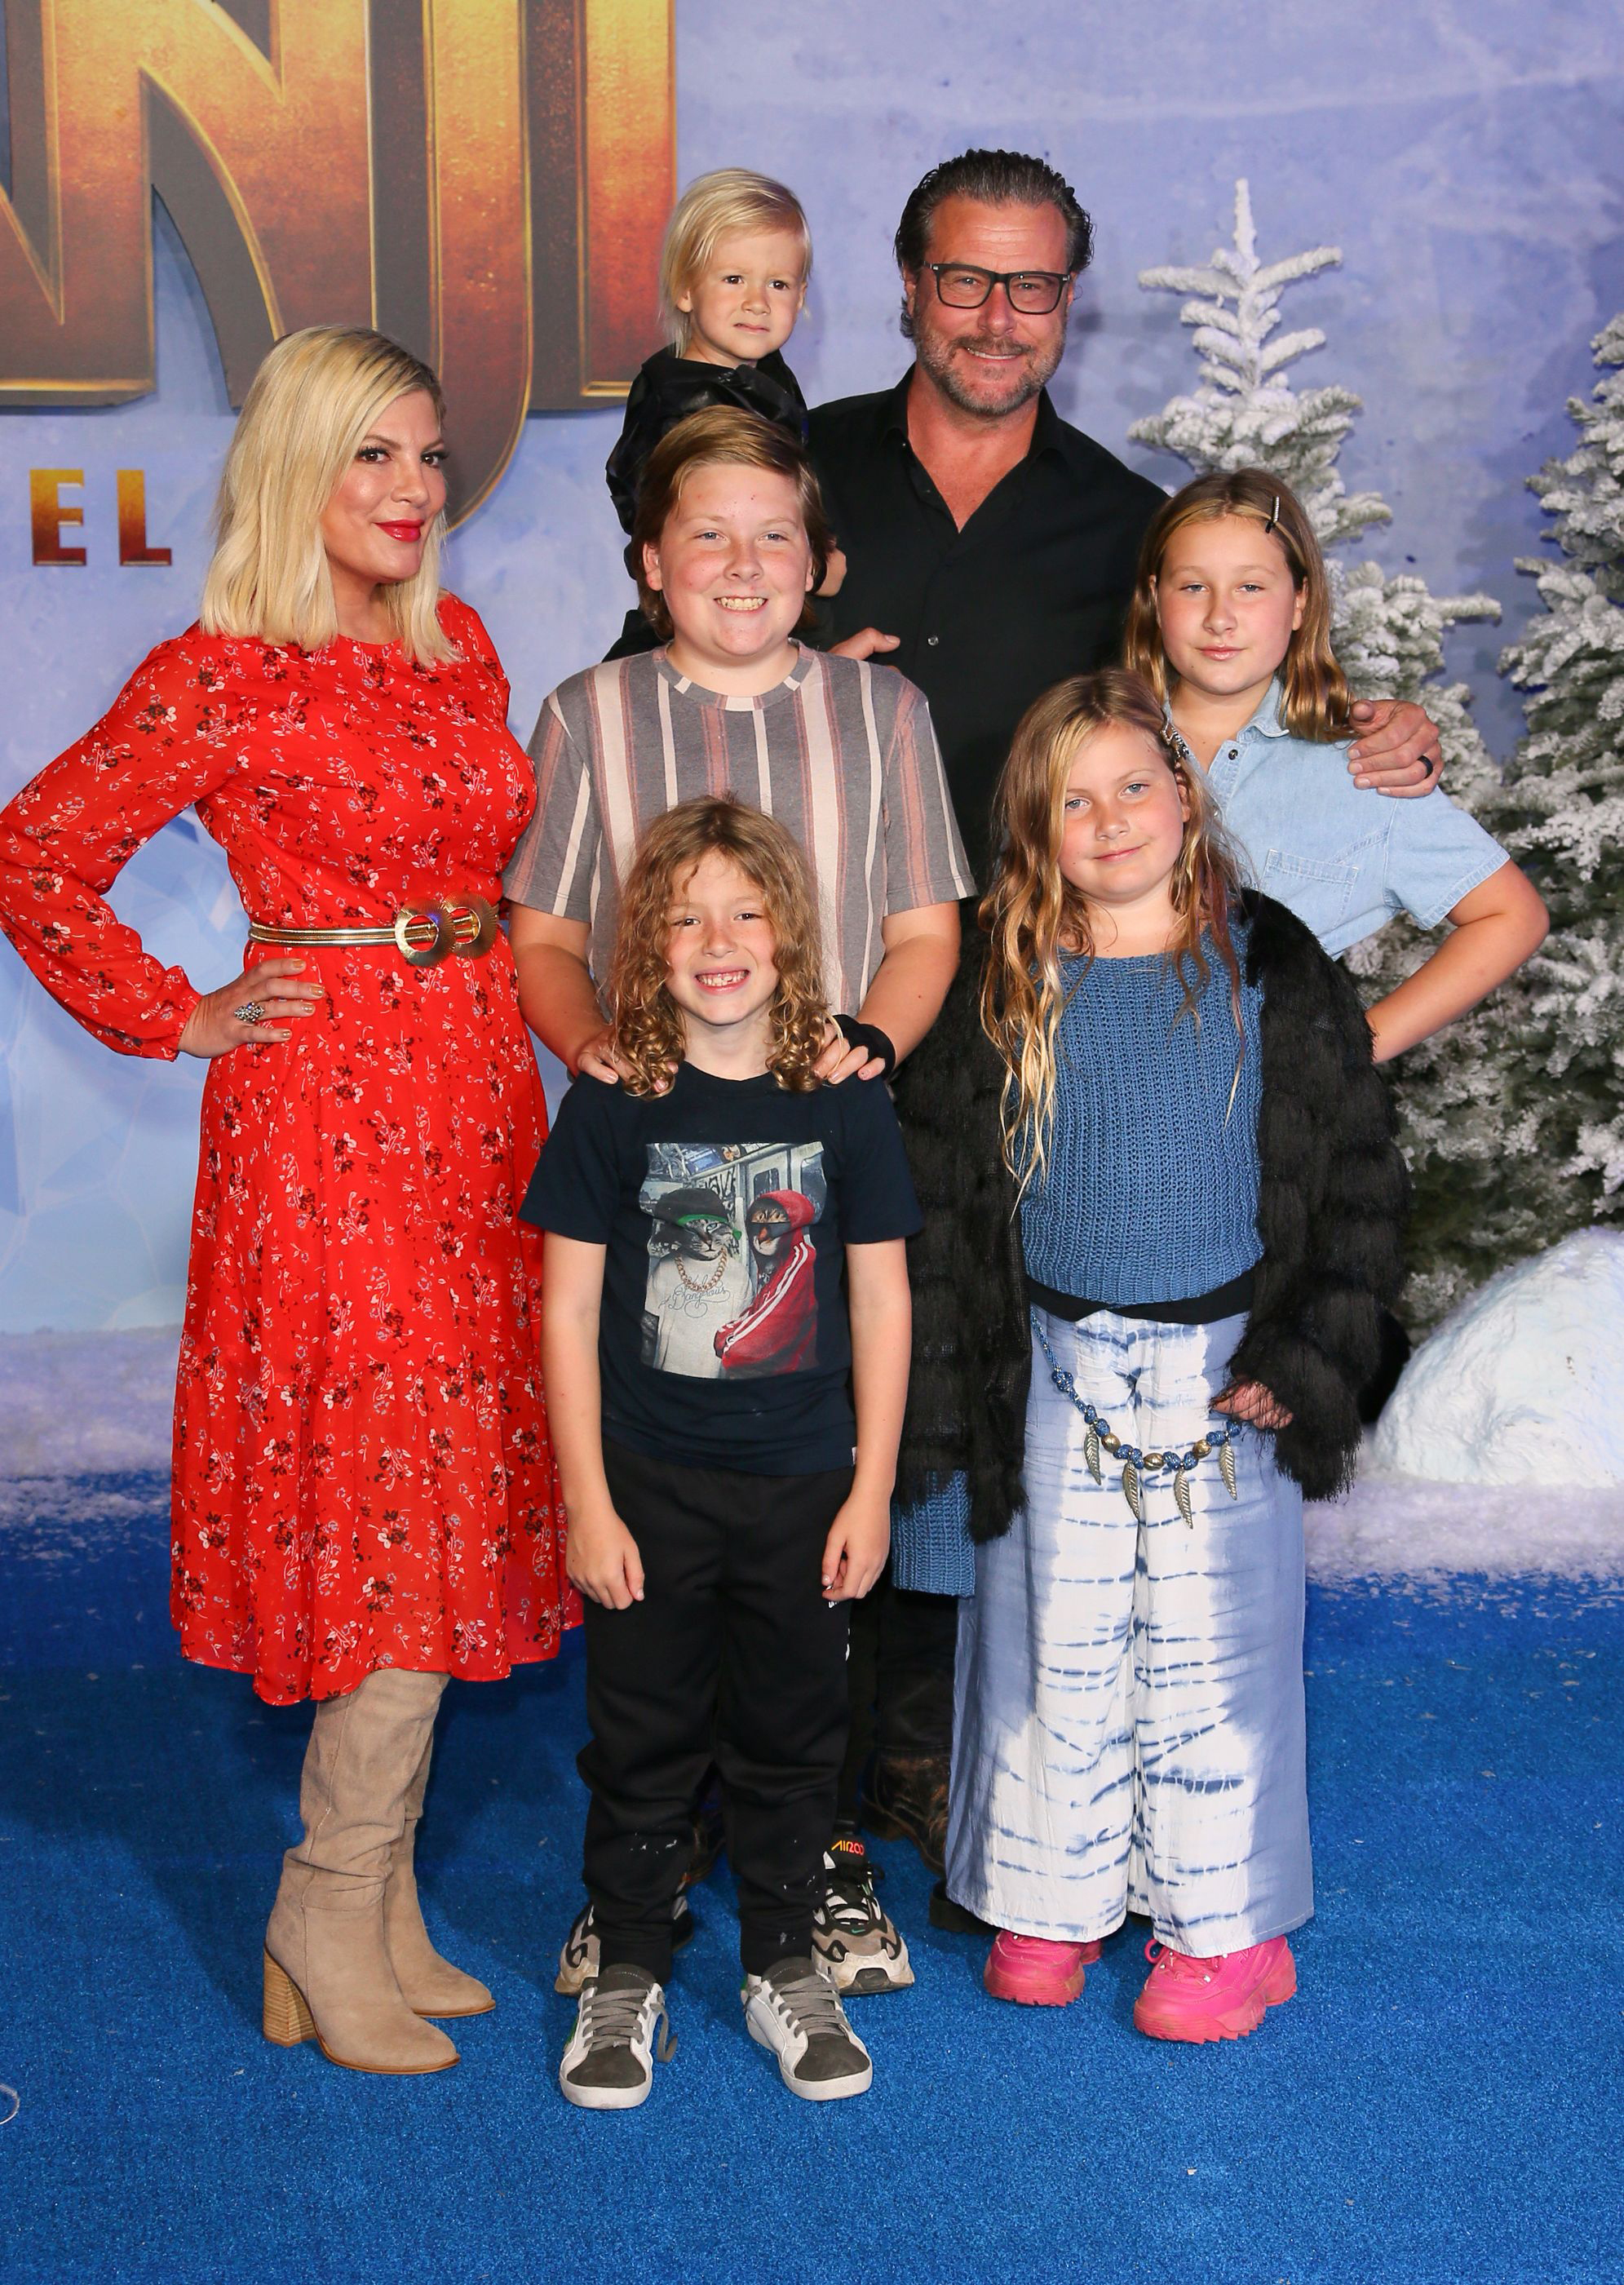 Tori Spelling says she's co-sleeping with four of her children